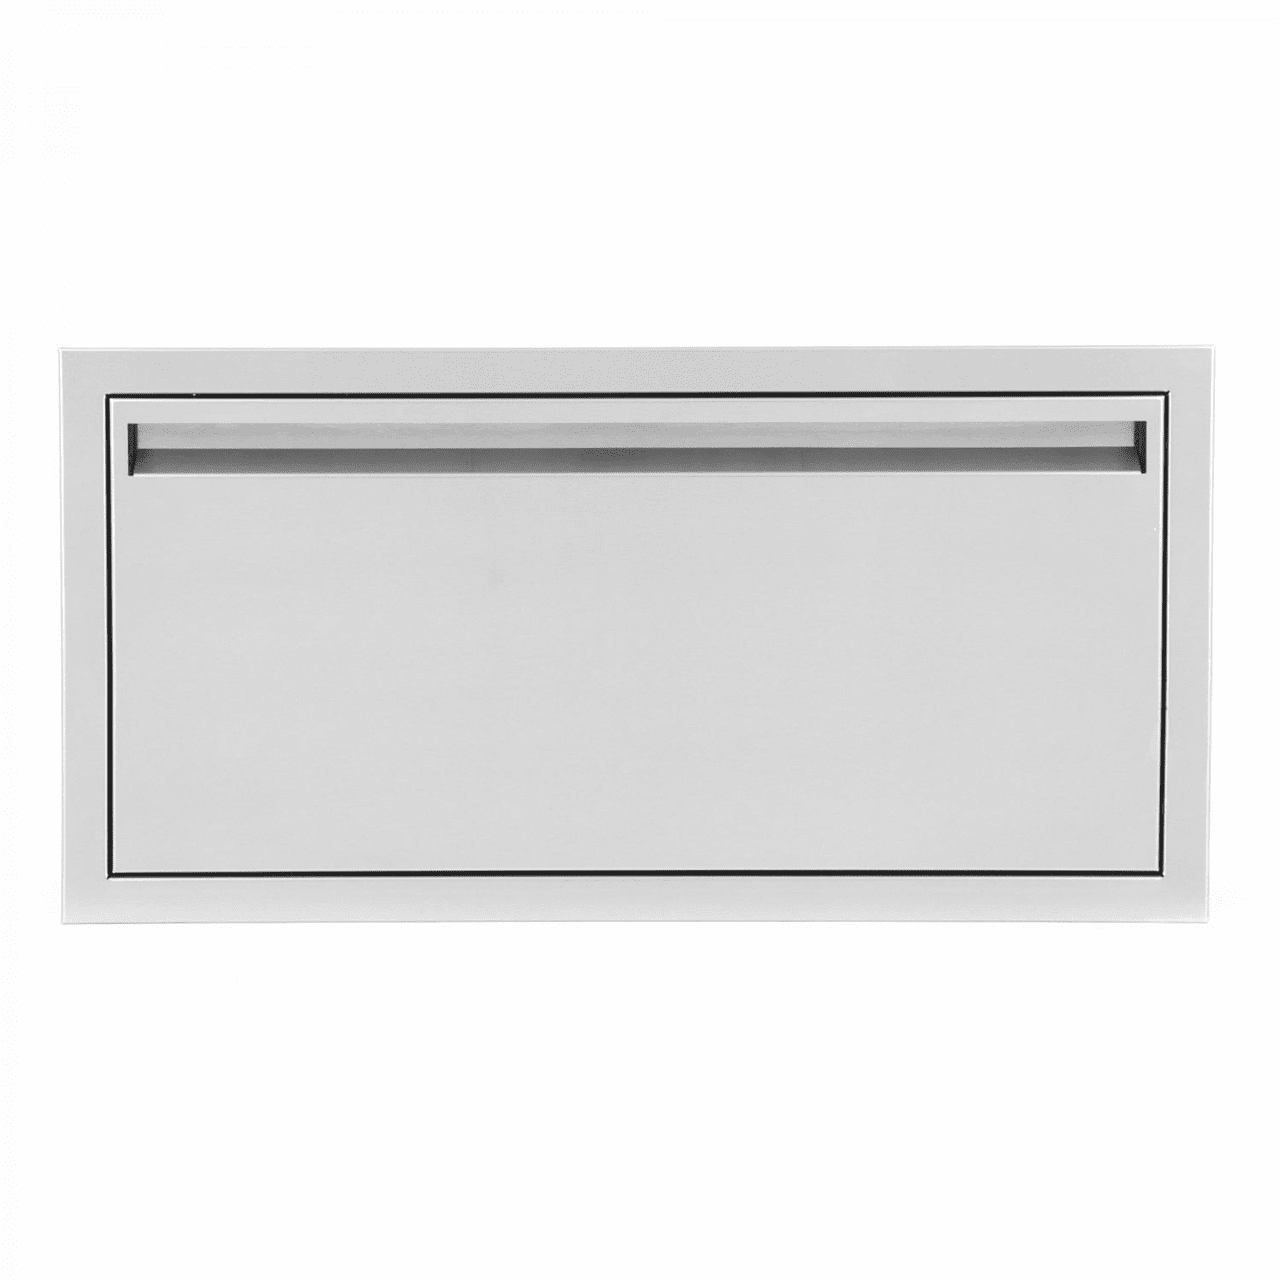 PCM 301 Series 1 Drawer 15 inches deep Stainless